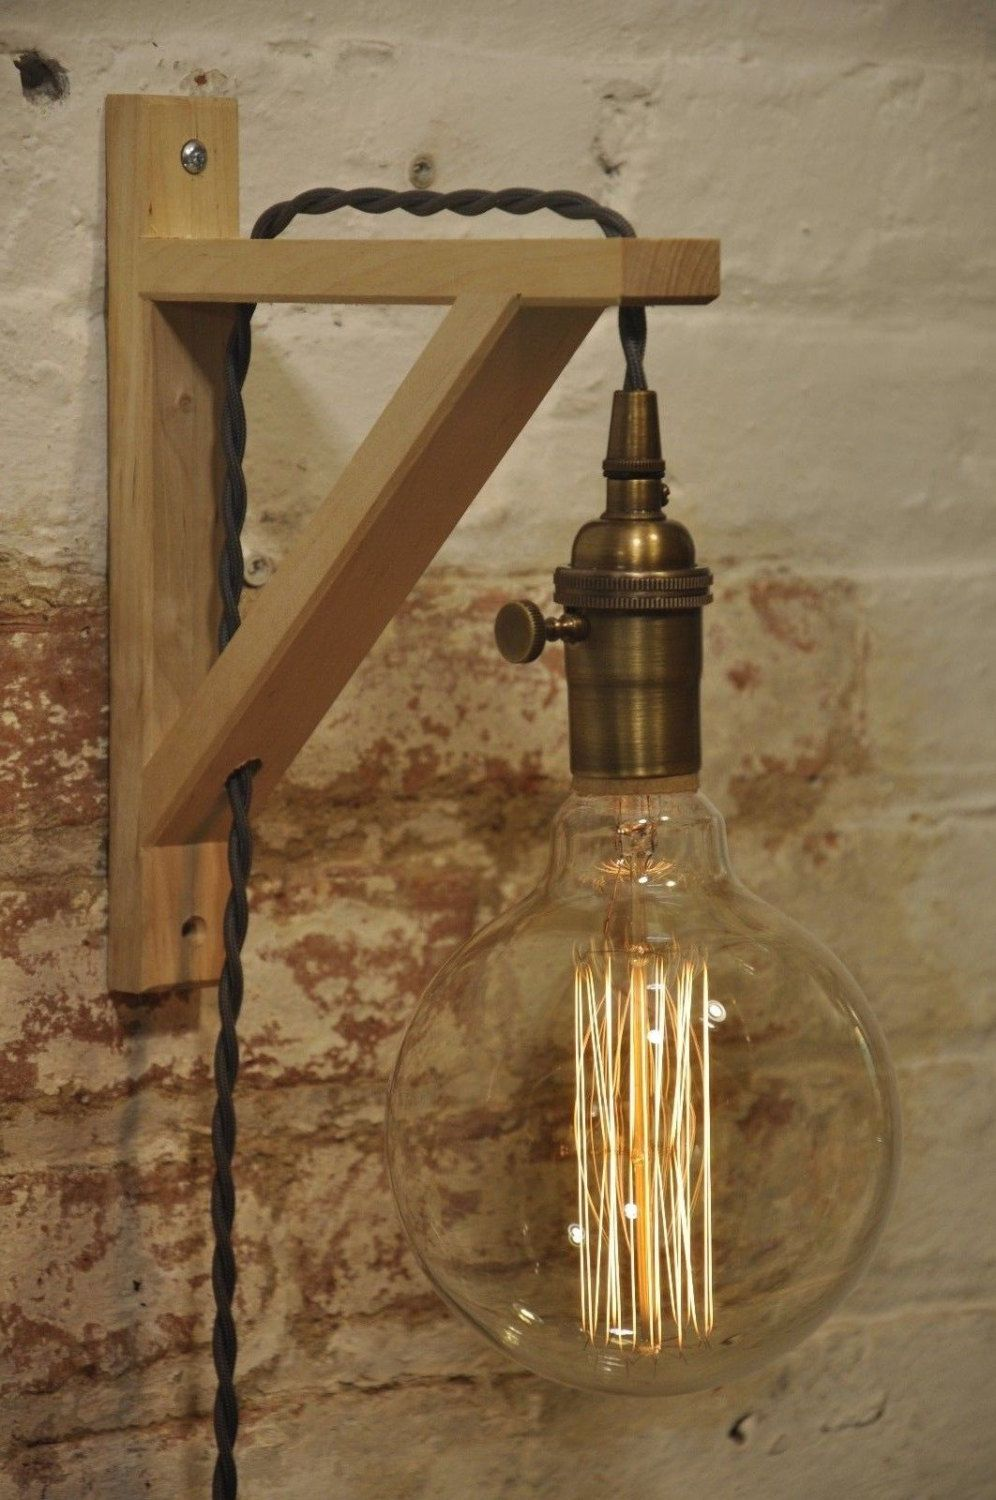 And cabinet pulls with antique brass sconces and a chrome faucet - Wall Sconce Antique Brass Birch Wood Light Lamp Industrial Retro Vintage Solid